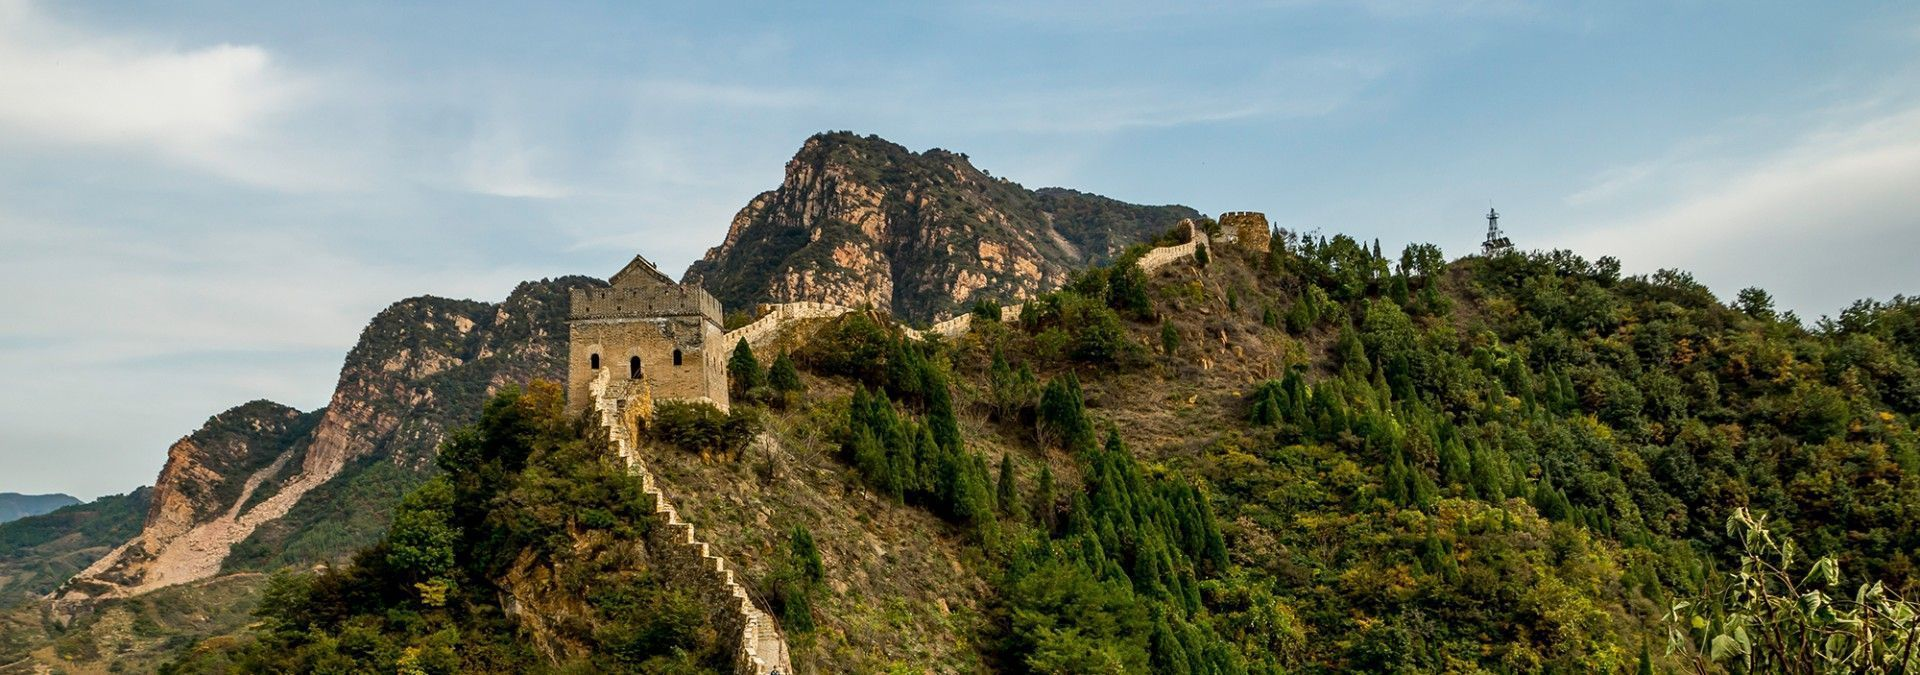 Great_Wall_of_China_mountain_view.jpg